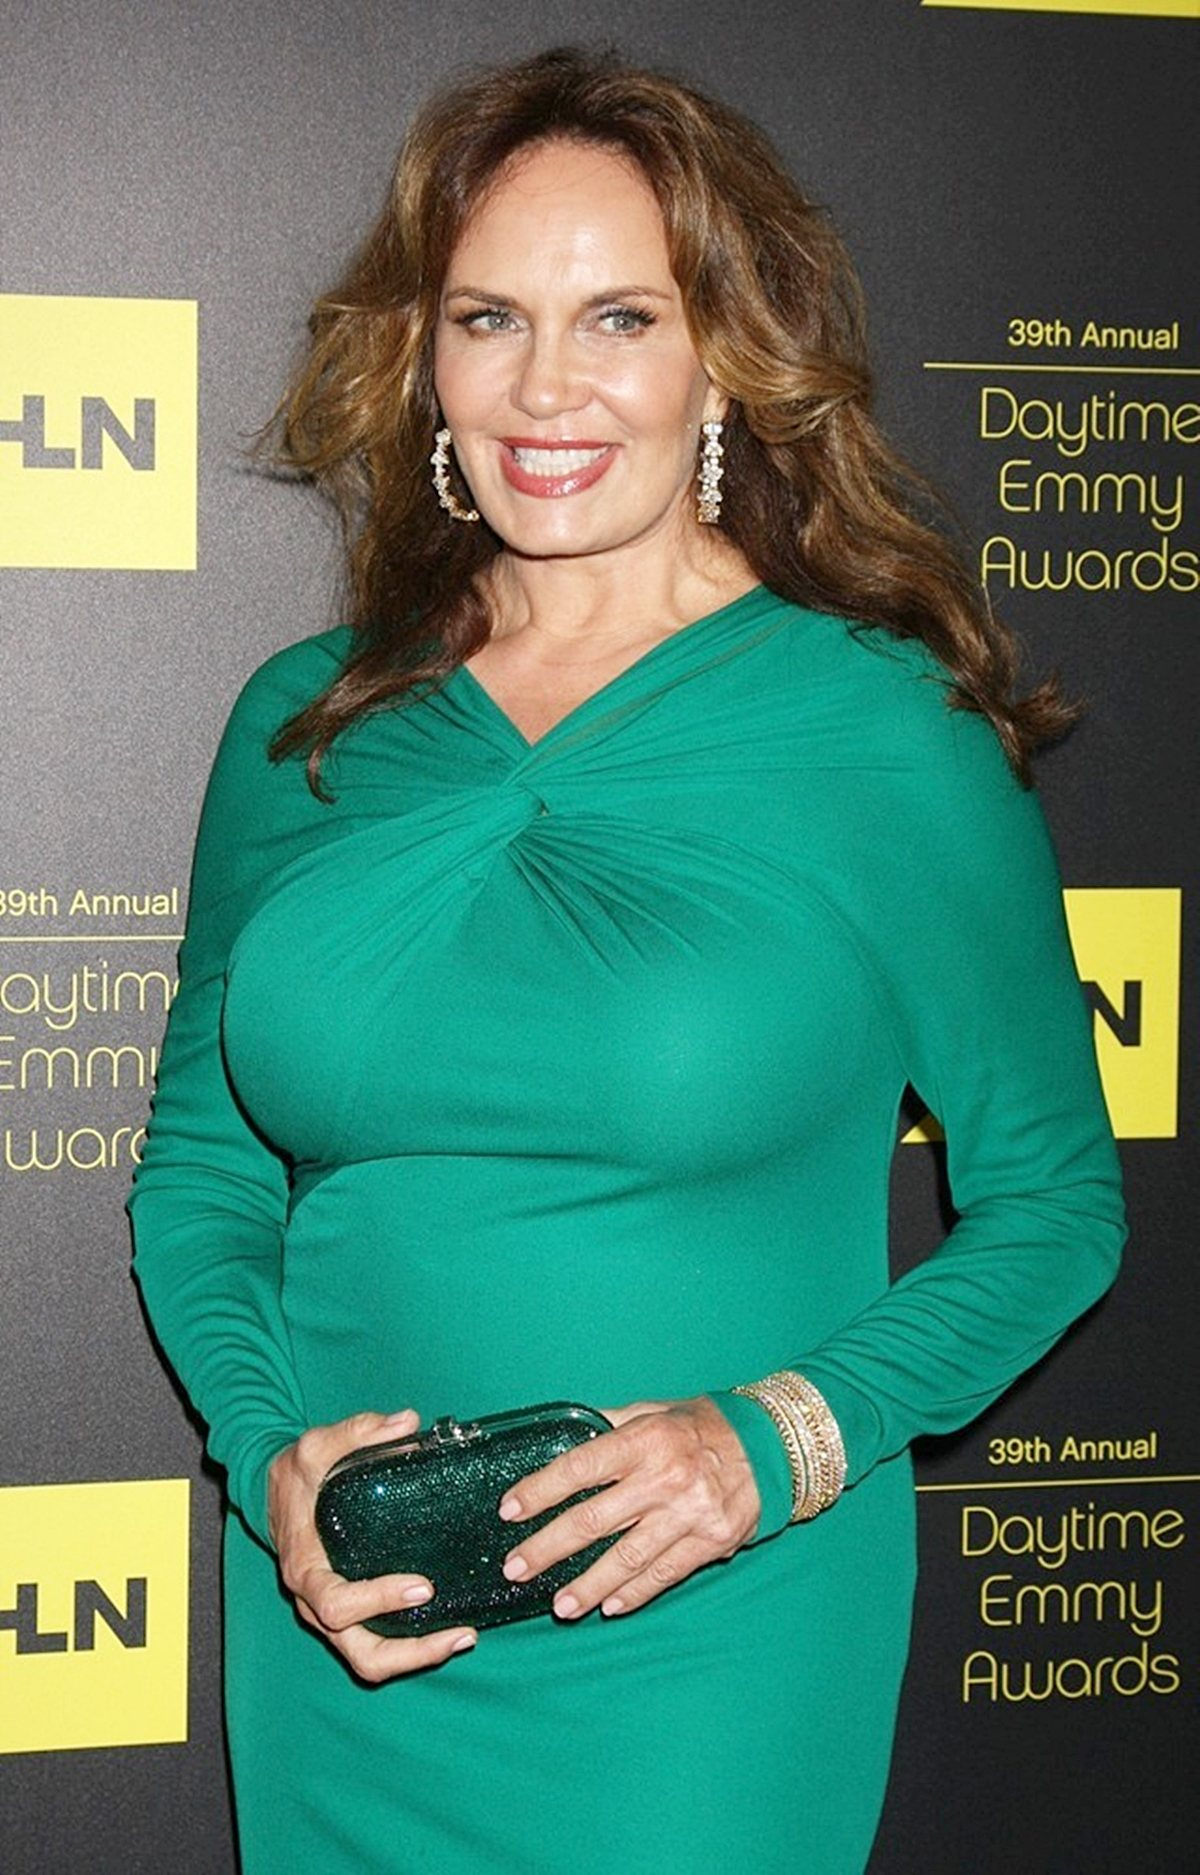 Catherine Bach wearing a green dress to the 39th Daytime Emmy Awards in 2012